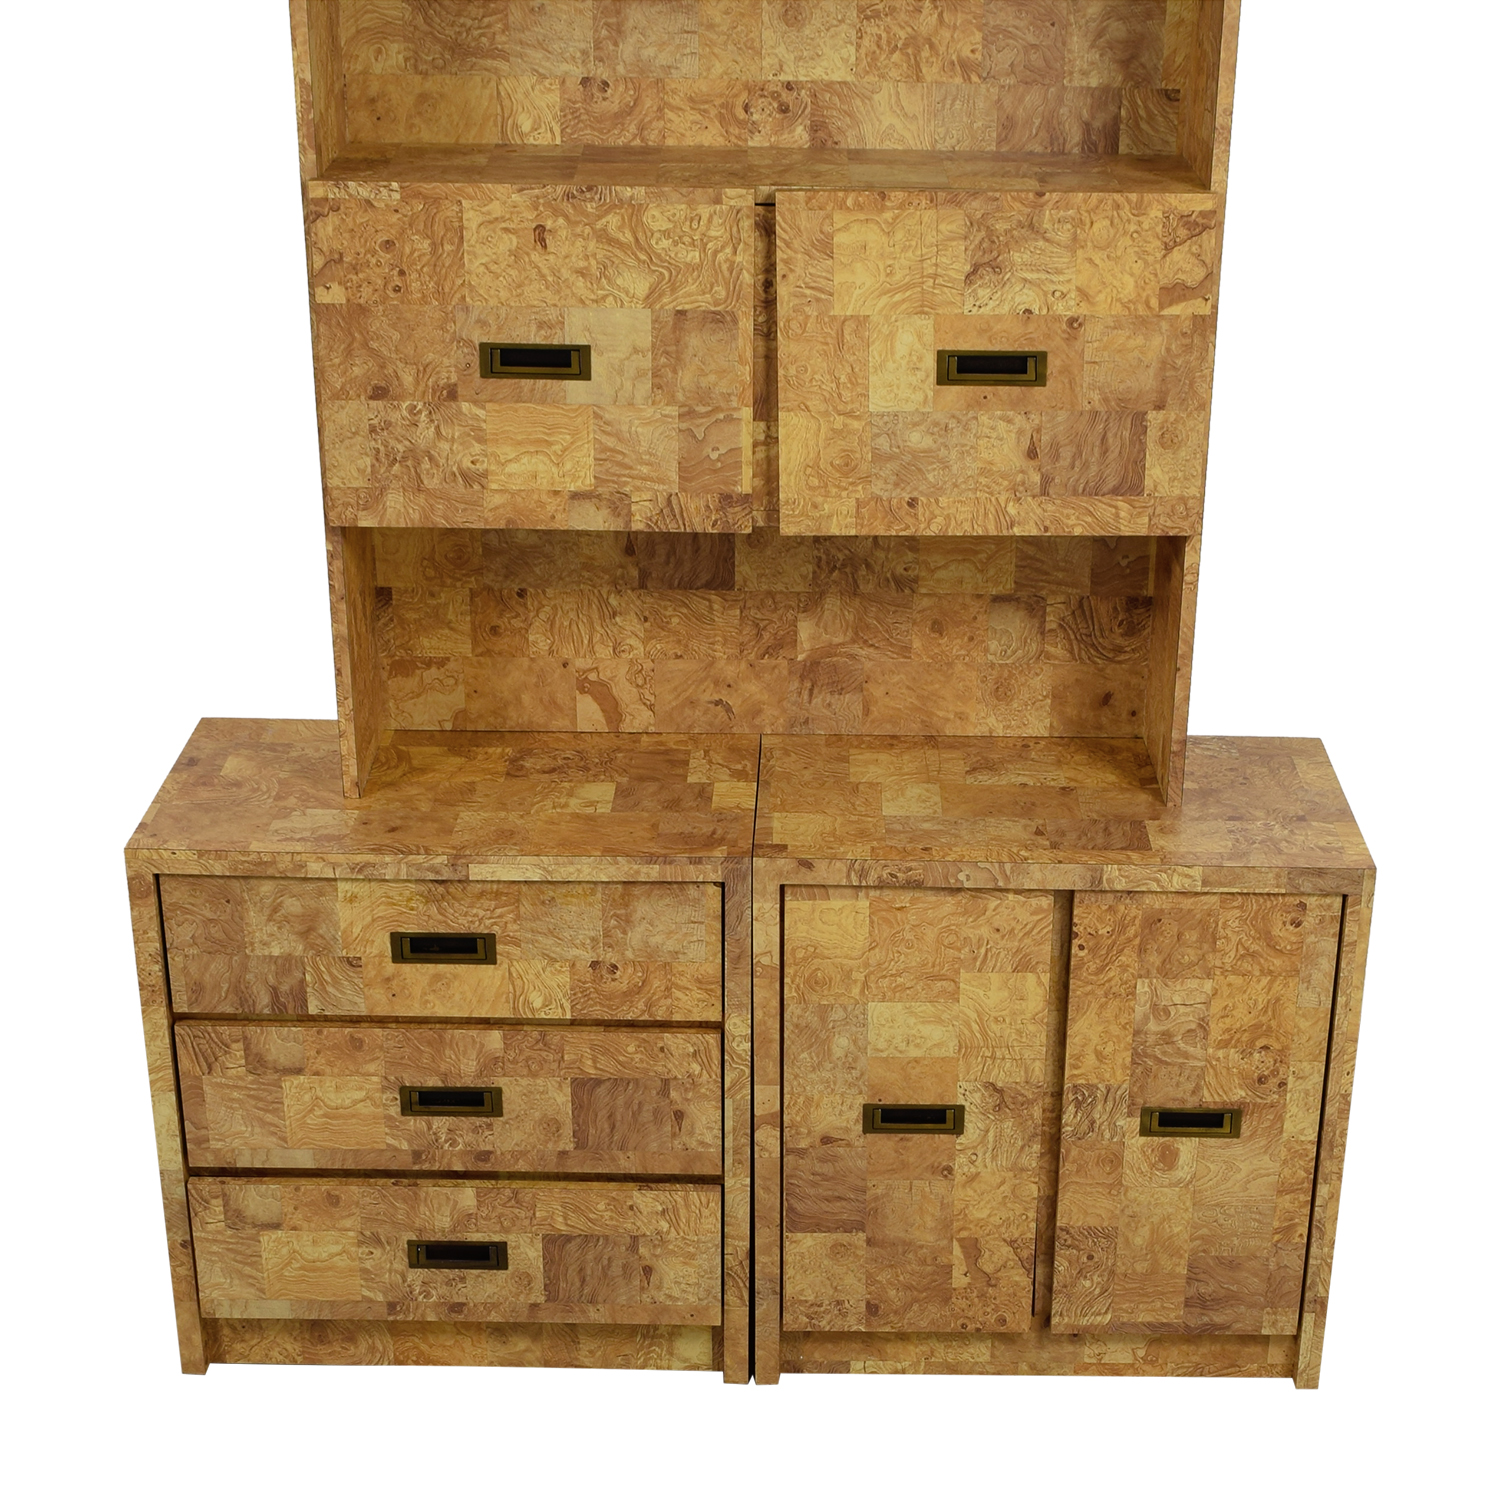 Super 90% OFF - Multi-Wood Veneer Dresser with Bookcase / Storage MI27